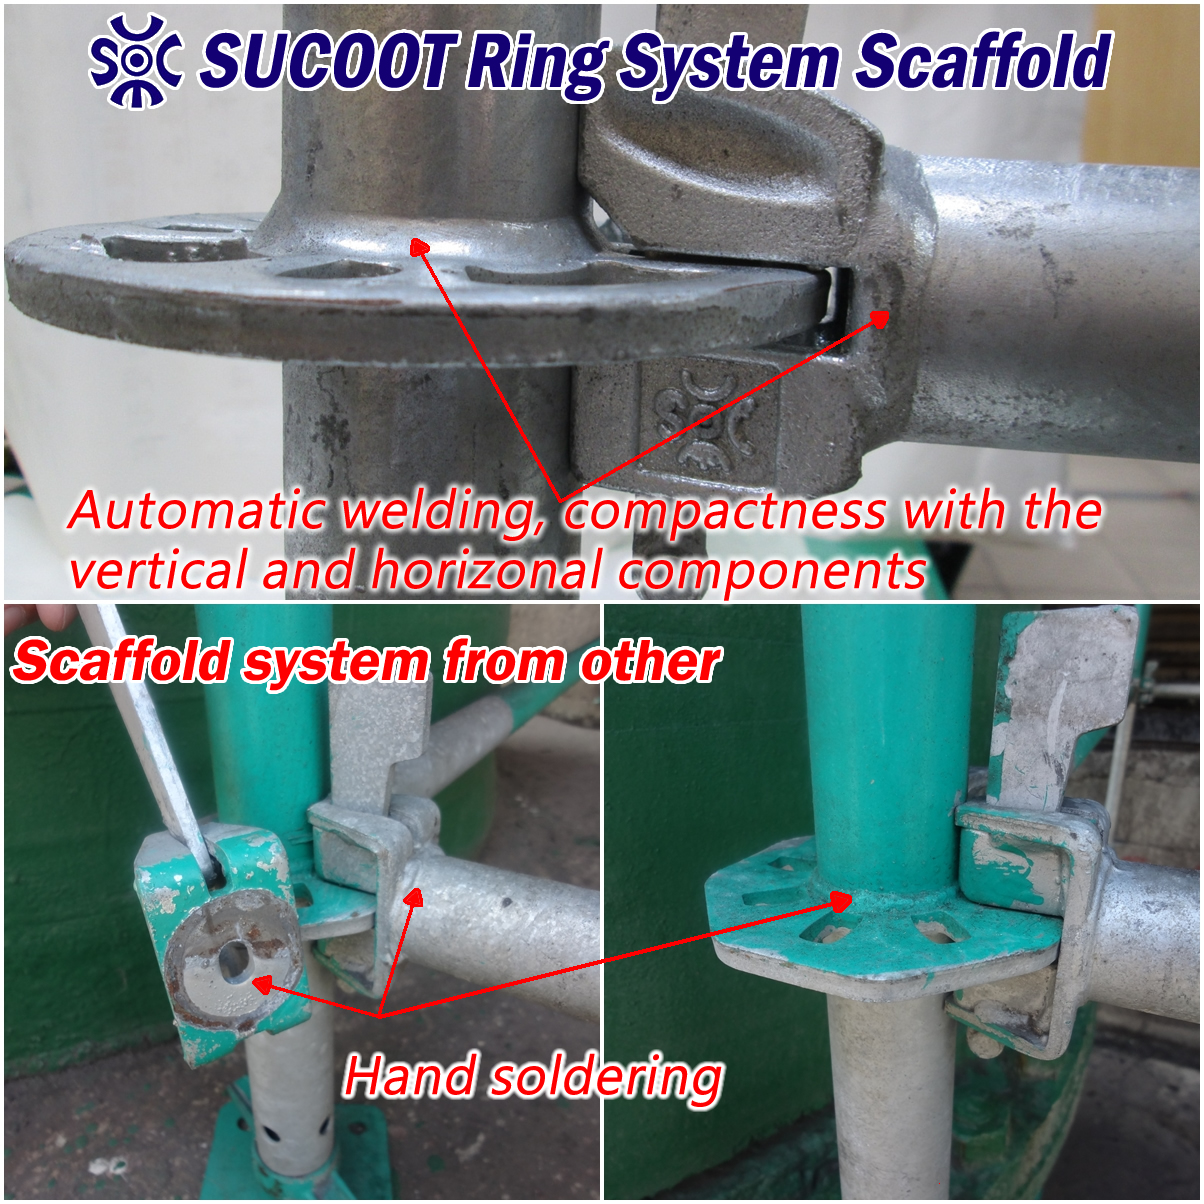 System Scaffold Components : Sucoot ring system scaffolding rental sale